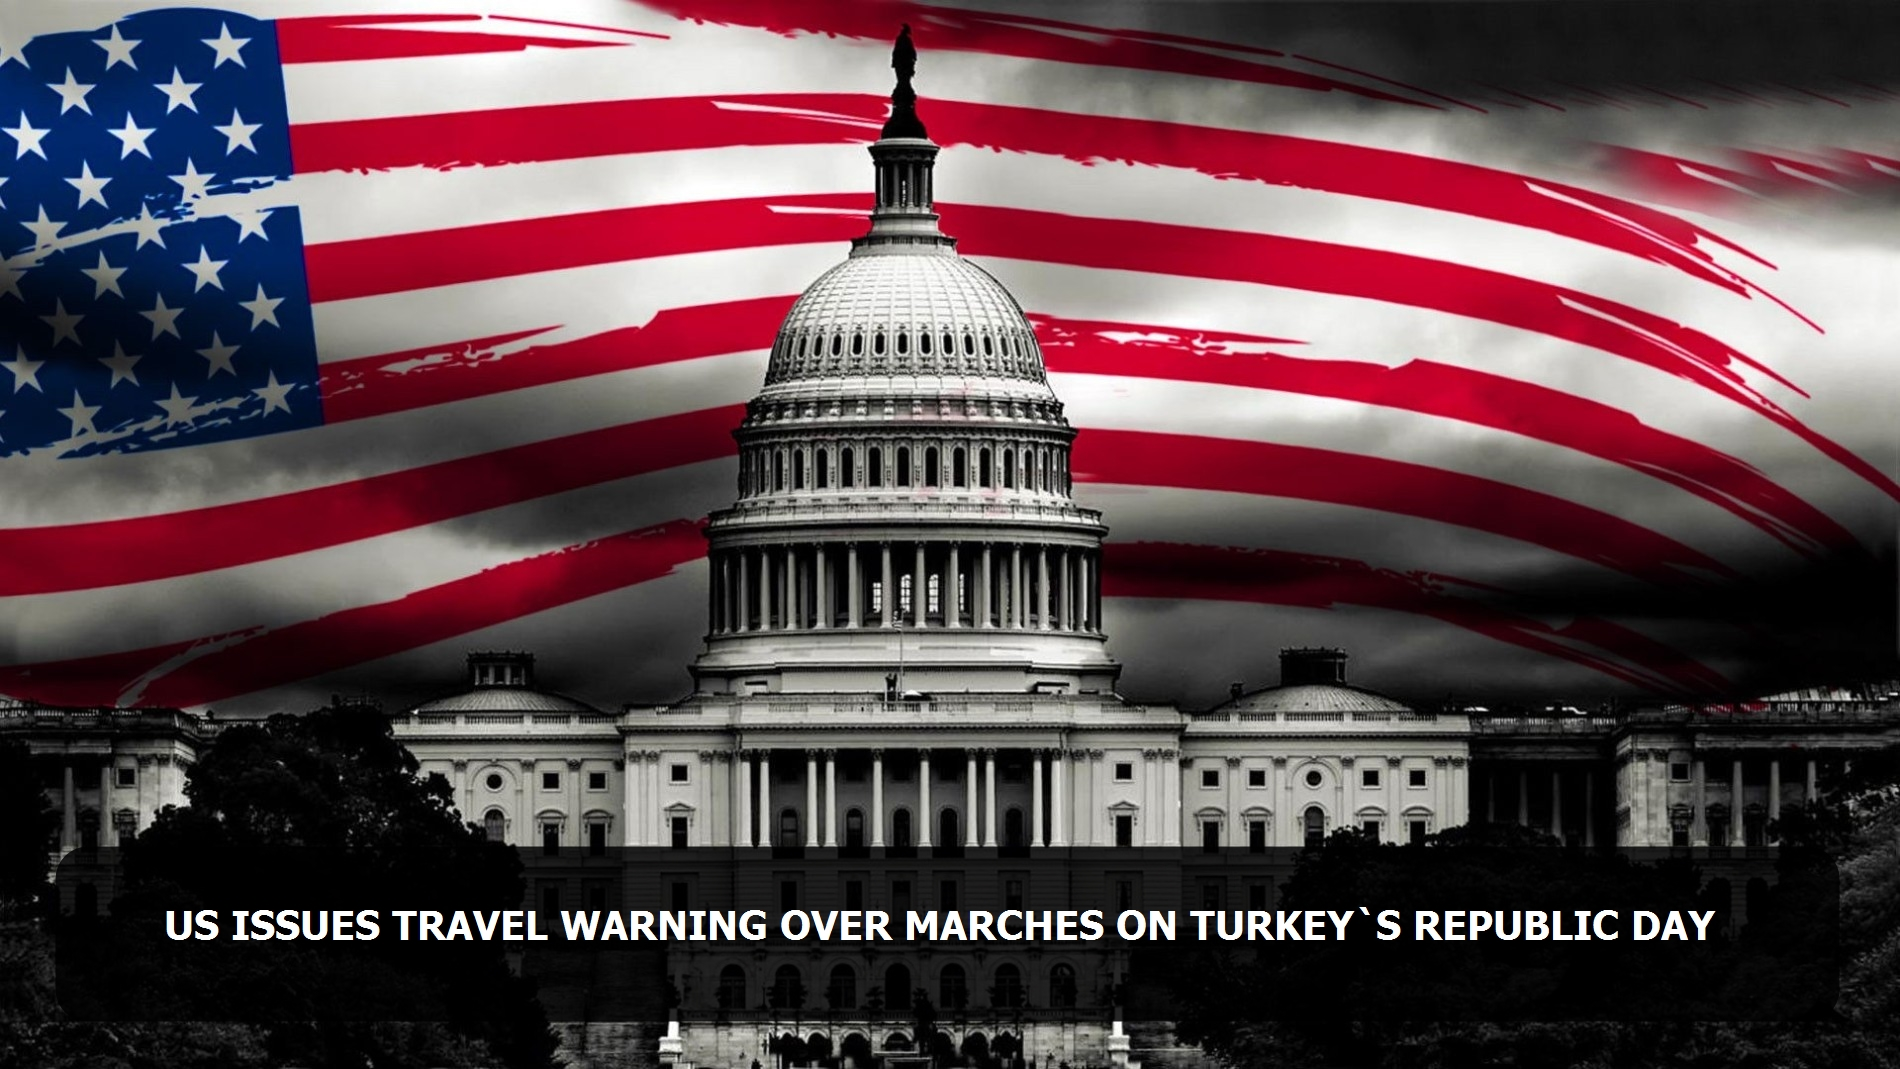 US issues travel warning over marches on Turkey's Republic Day